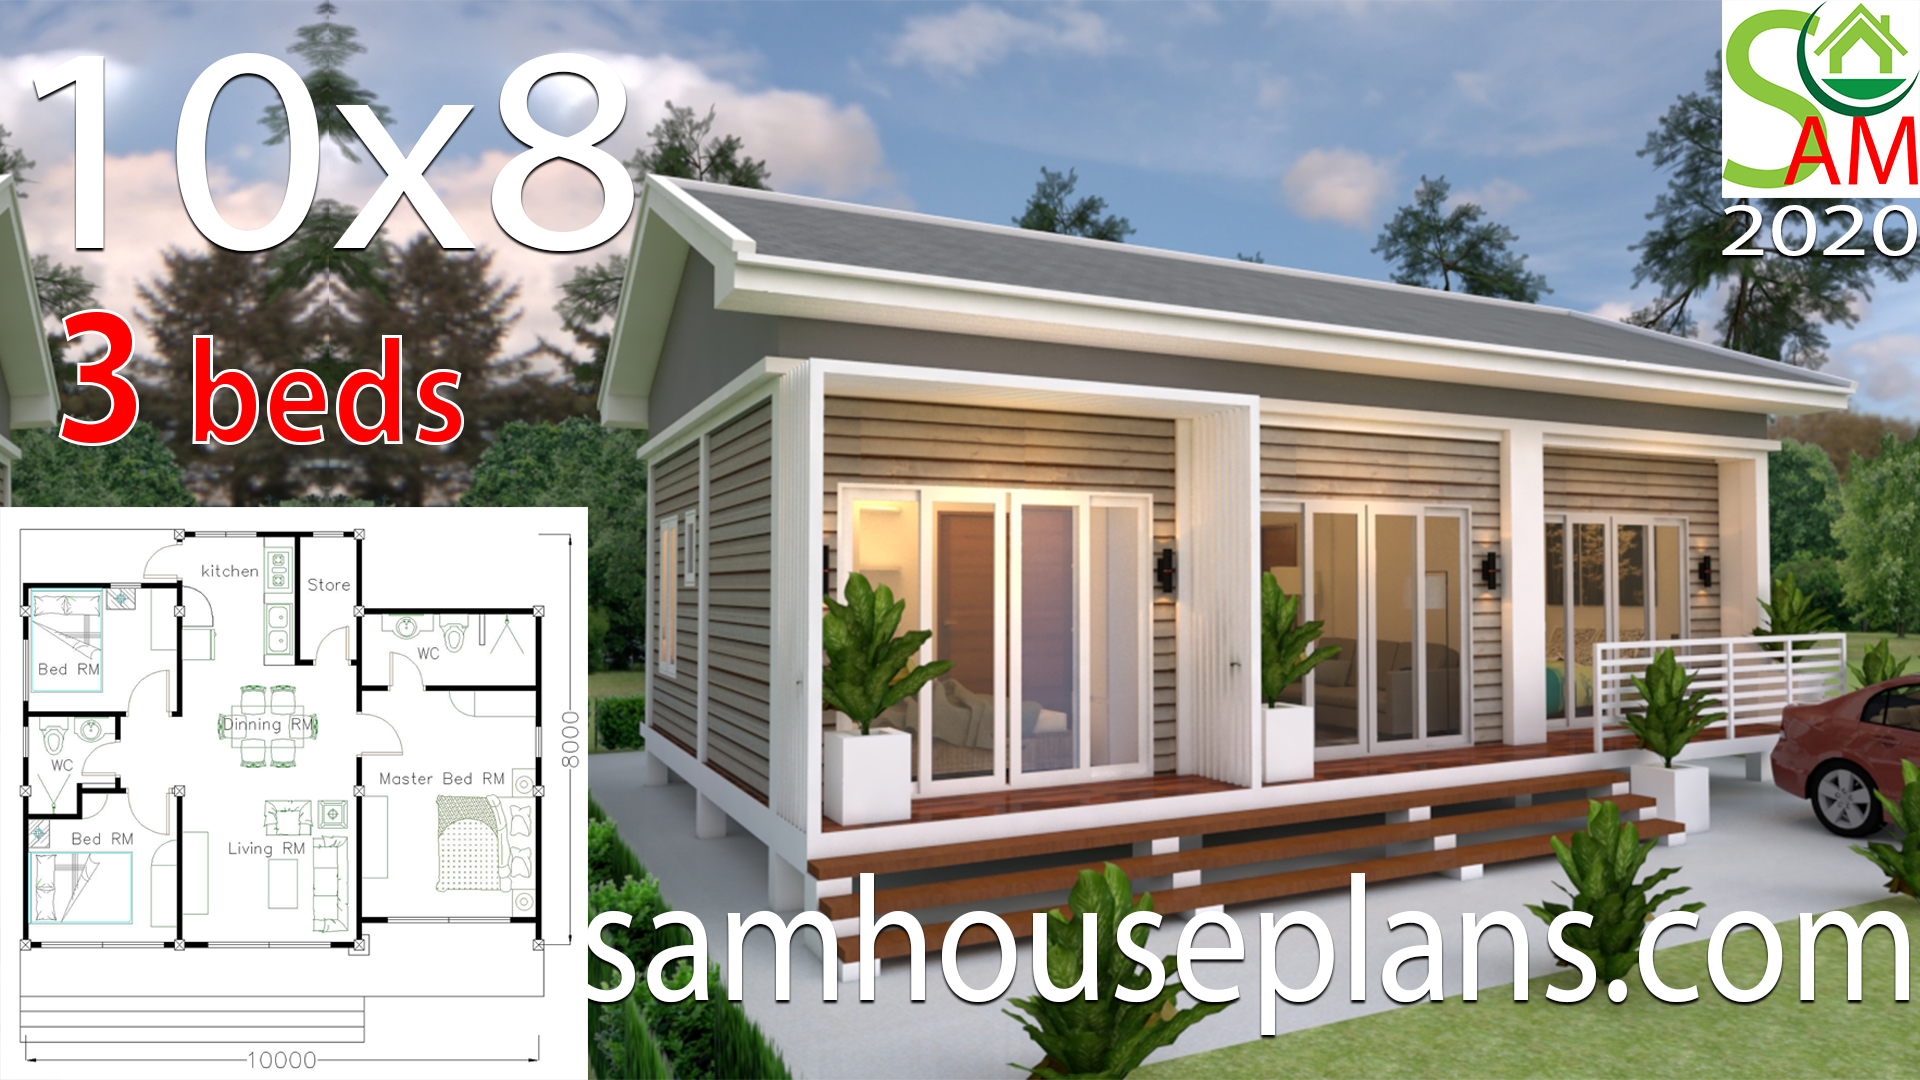 Small House Plans 10x8 with 3 Bedrooms Gable Roof - Sam House Plans